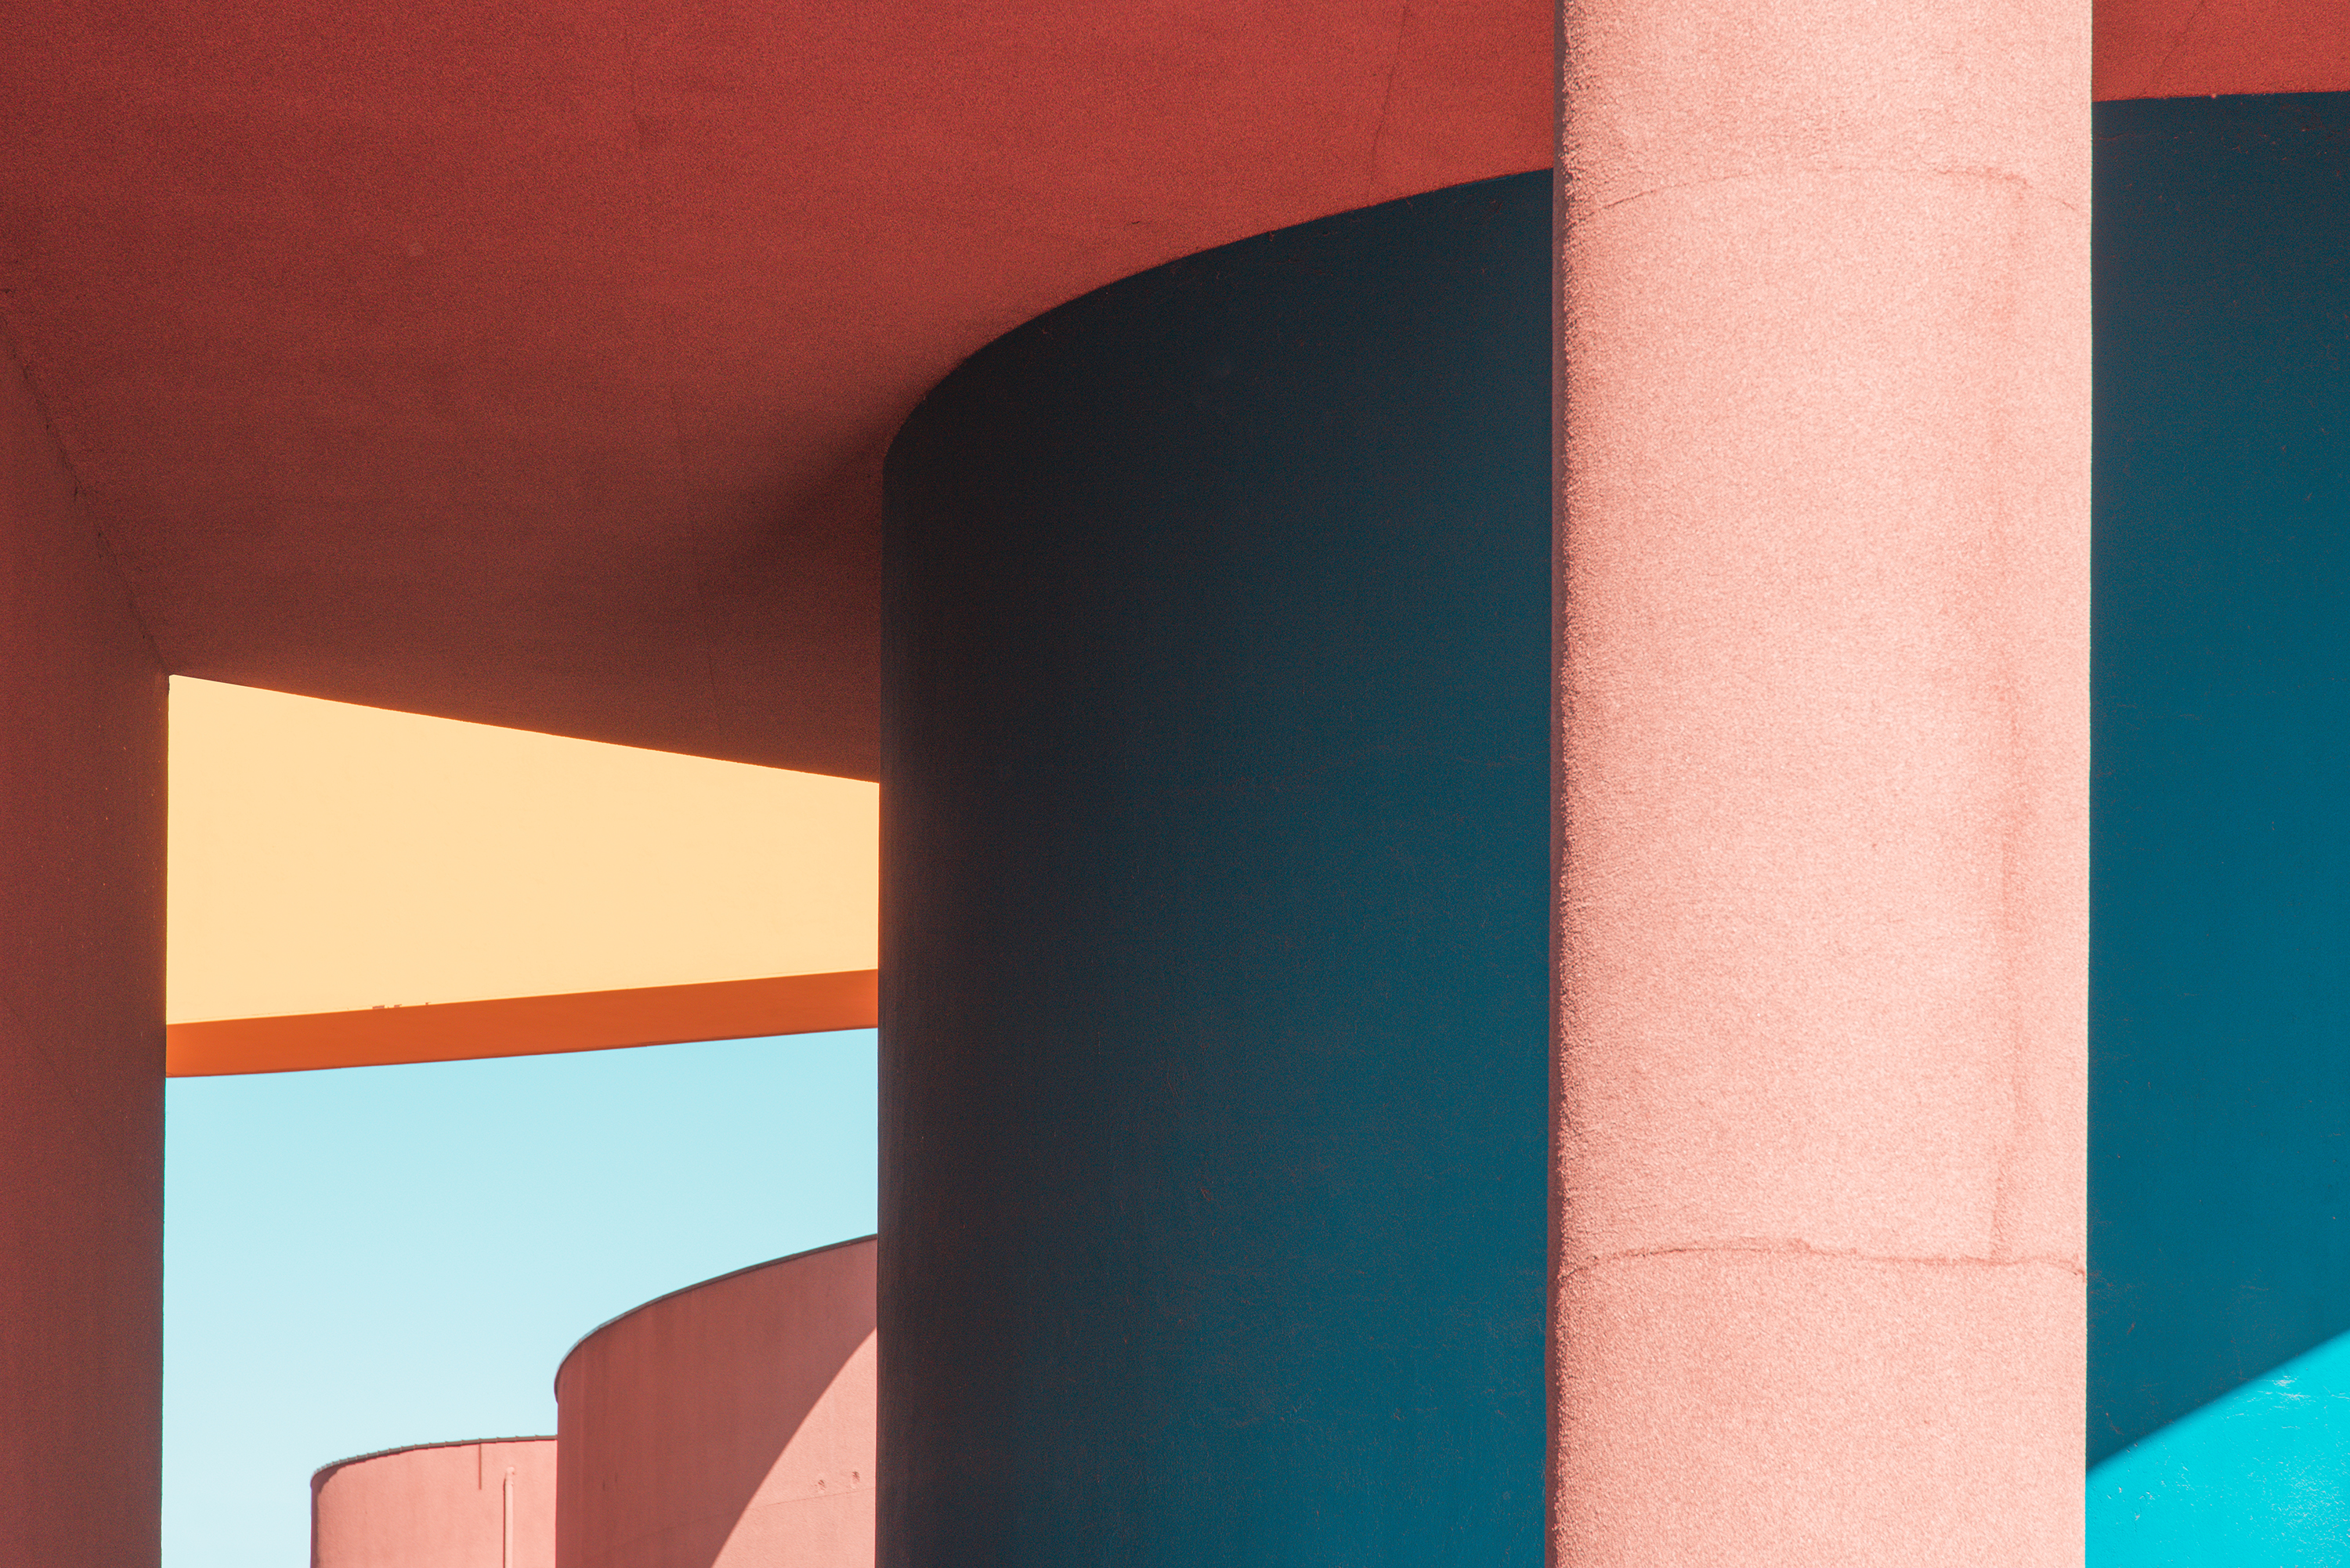 Colourful and Geometric Architecture Pictures